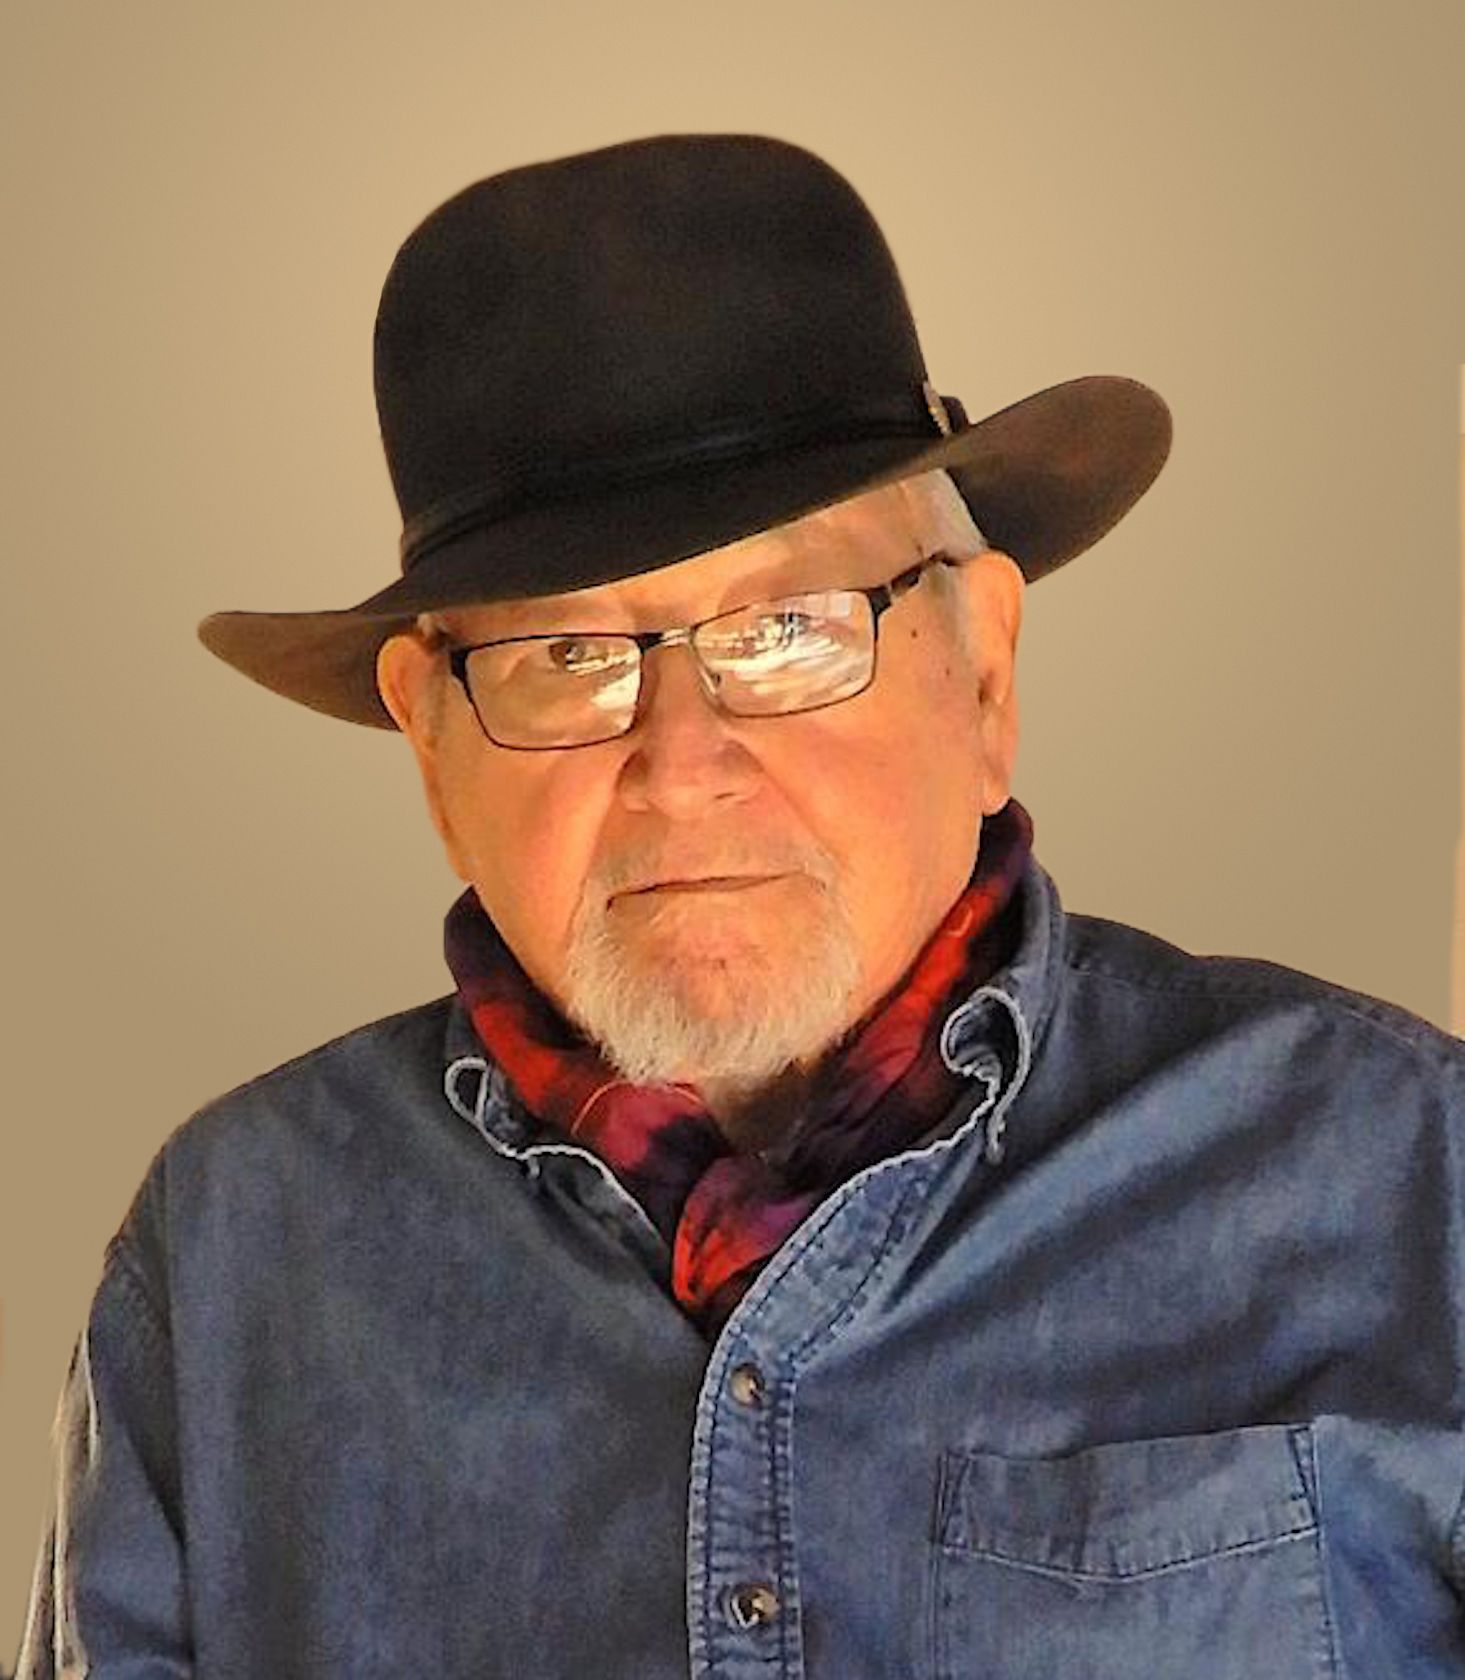 Dr. Momaday is the recipient of the 2019 Ken Burns American Heritage Prize